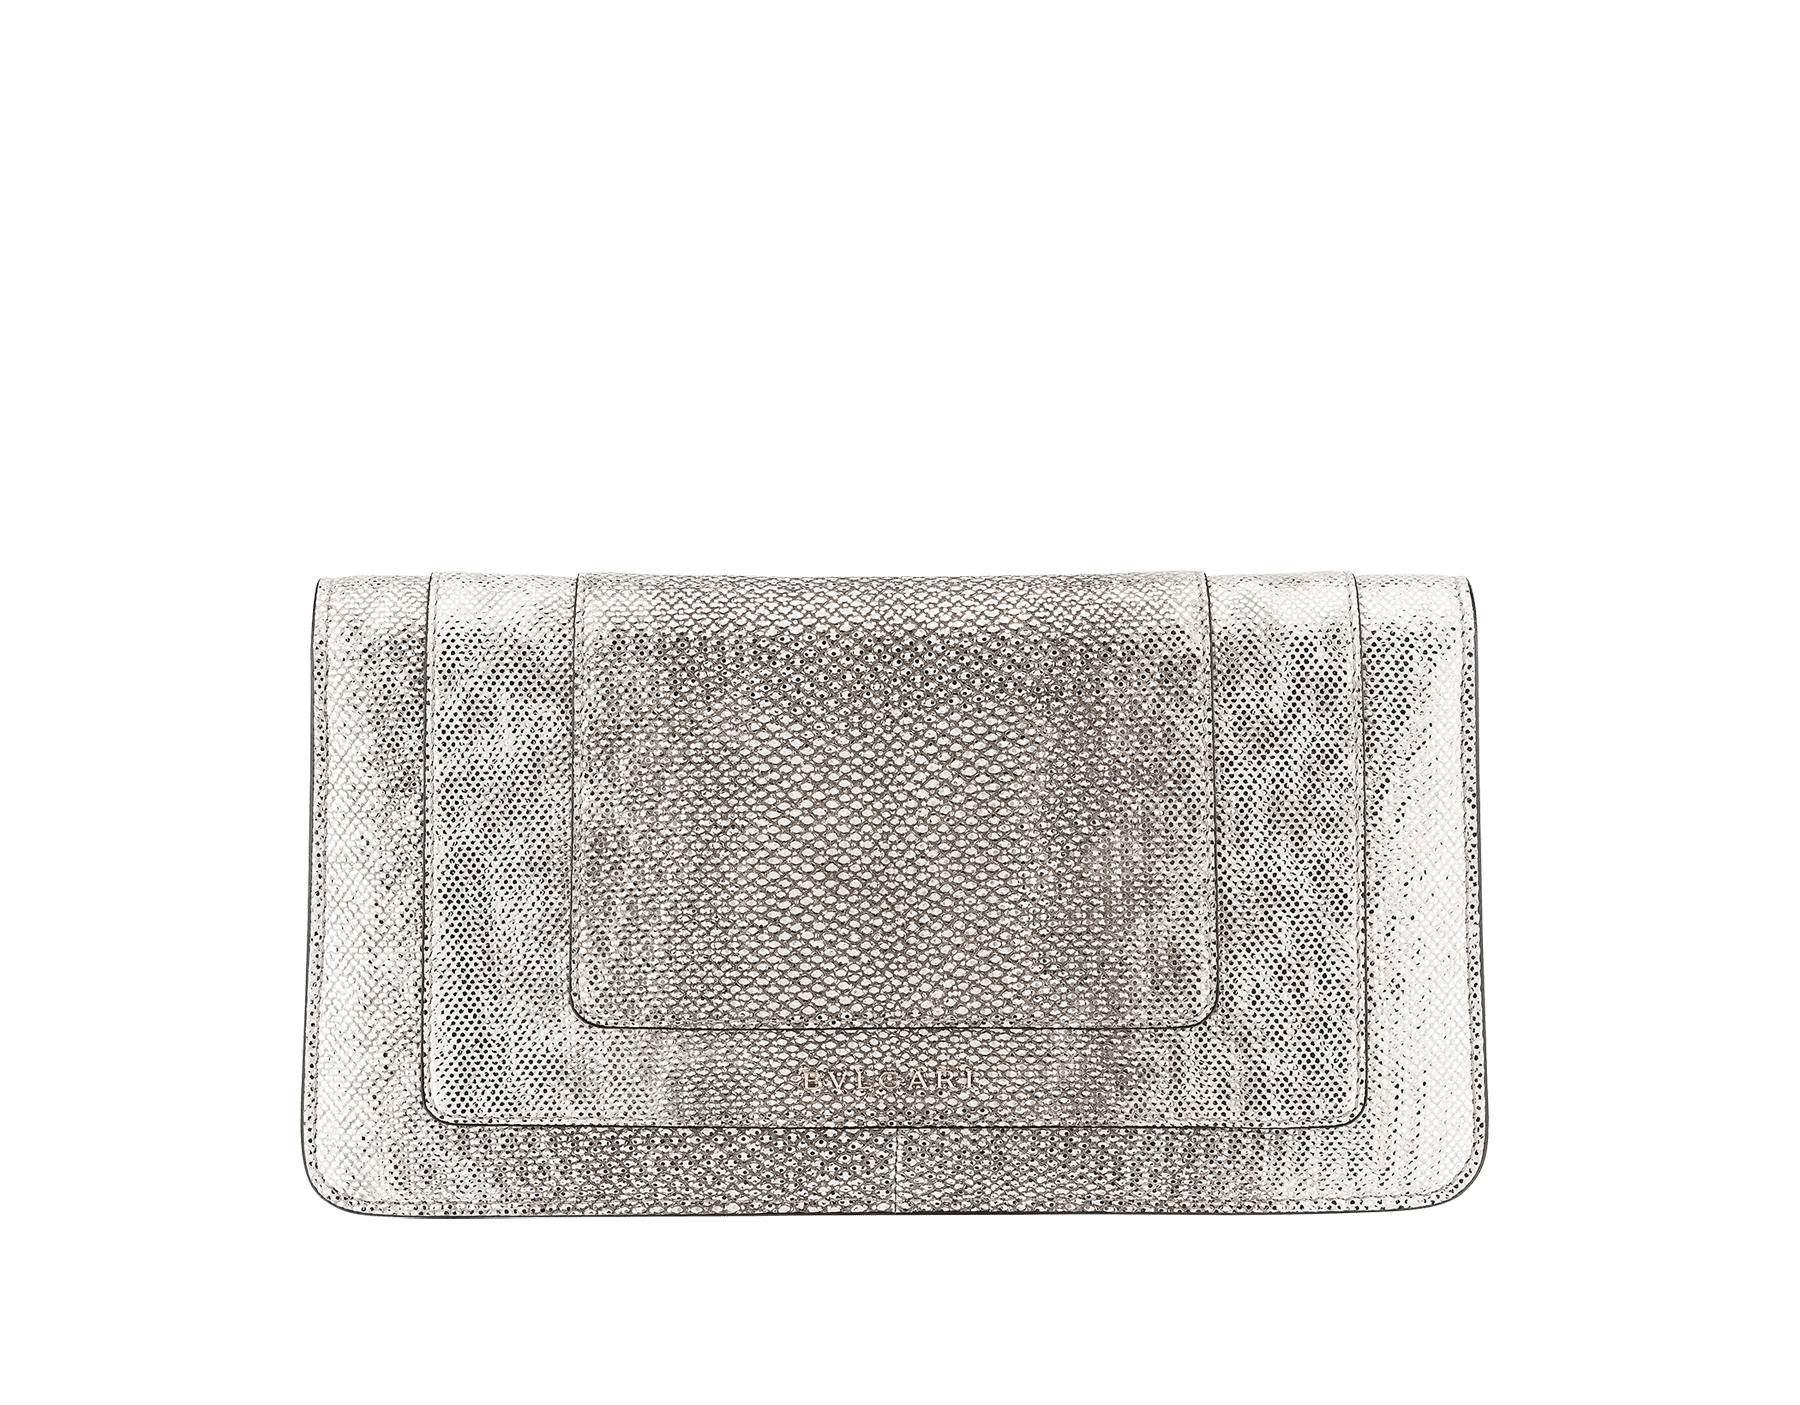 Serpenti Forever shoulder bag in milky opal metallic karung skin. Snakehead closure in light gold plated brass decorated with black and glitter milky opal enamel, and black onyx eyes. 287943 image 3